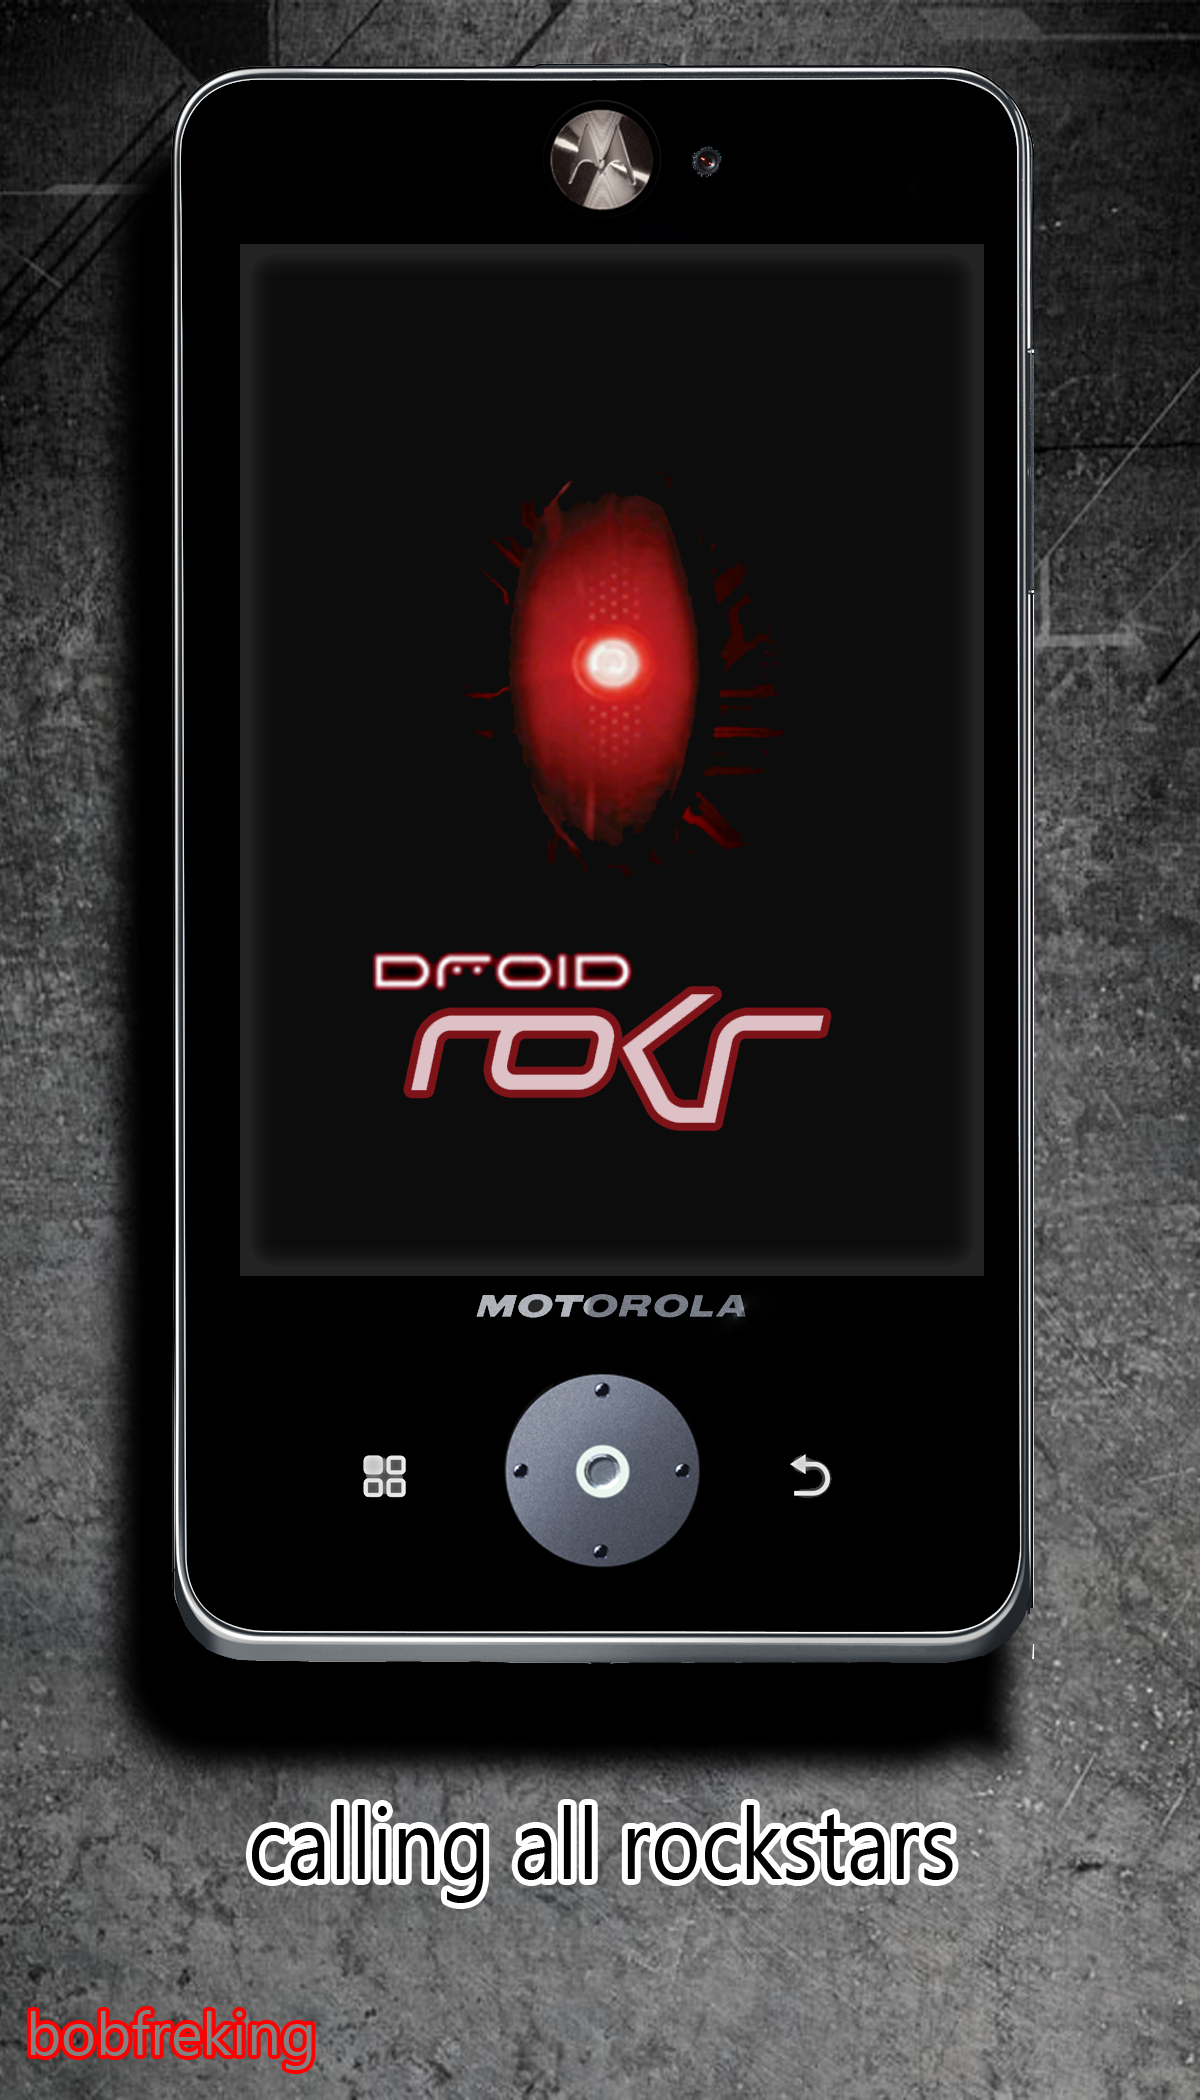 Motorola Droid ROKR Concept, an 128GB Phone for Music Lovers